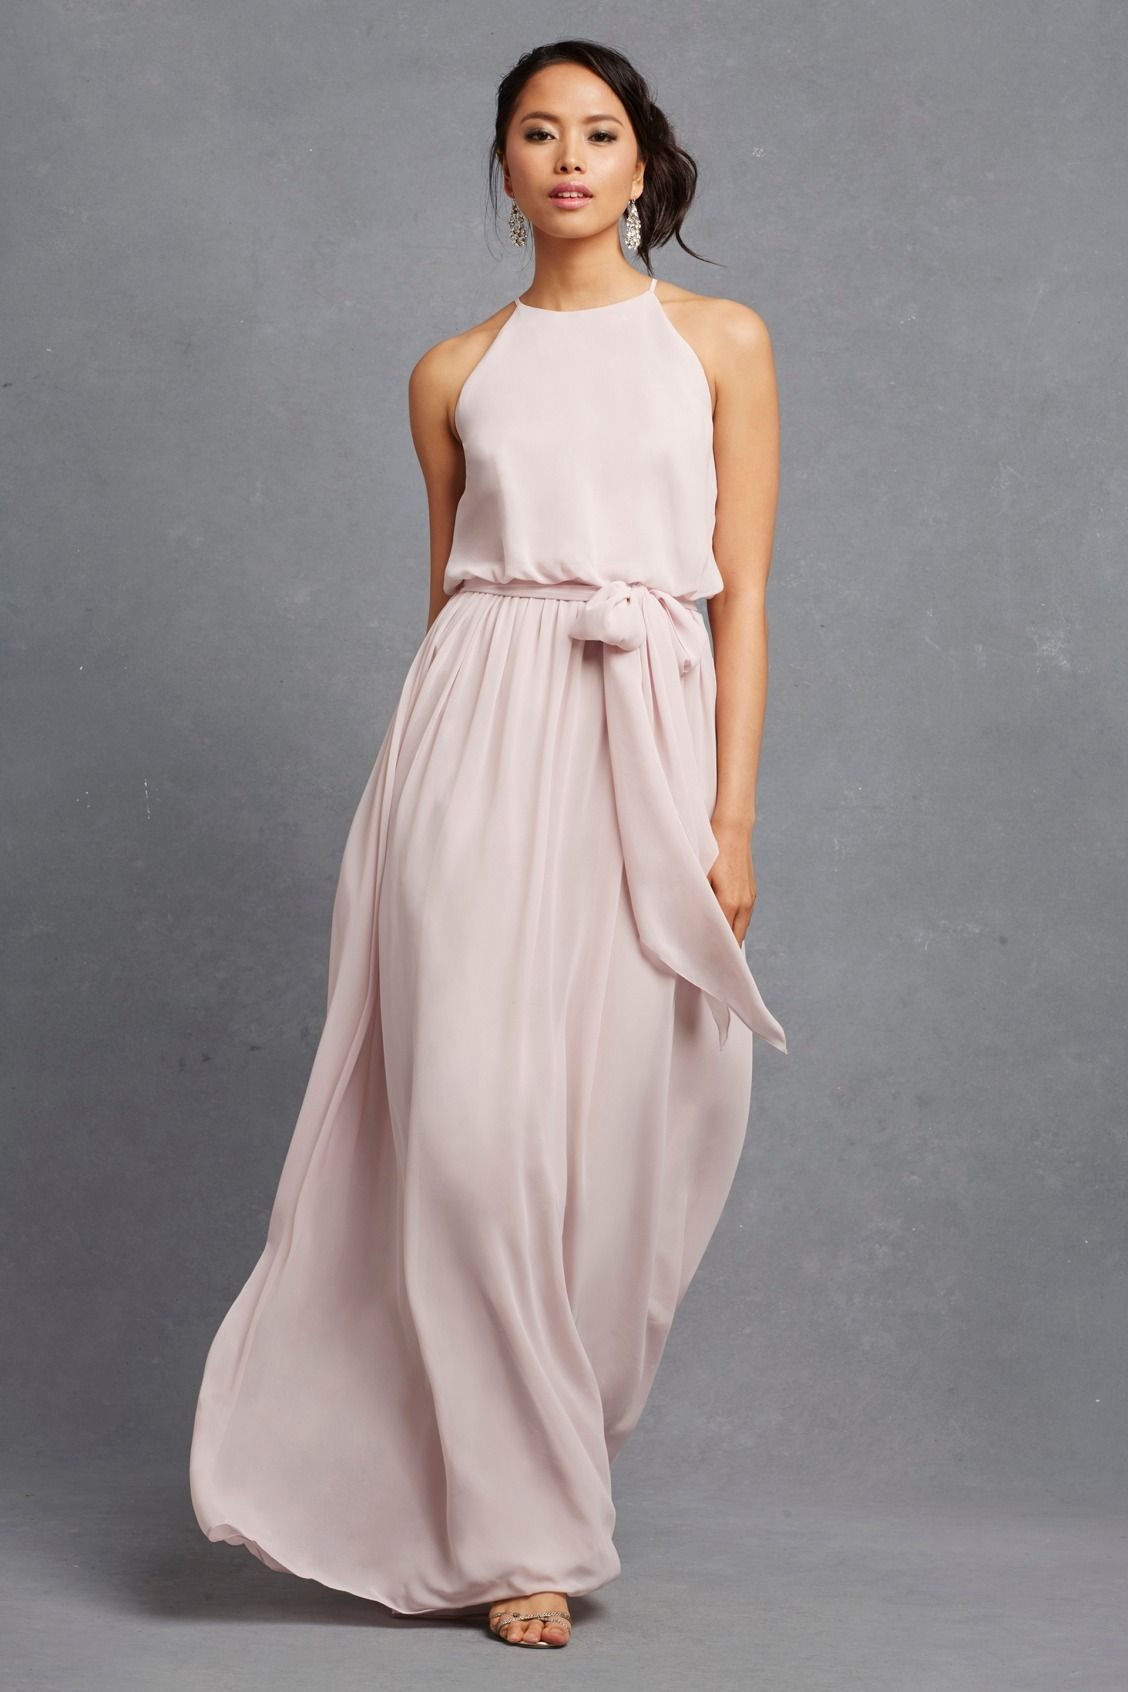 35169a8da66 Alana Chiffon Bridesmaid Dress by Donna Morgan available at David s Bridal